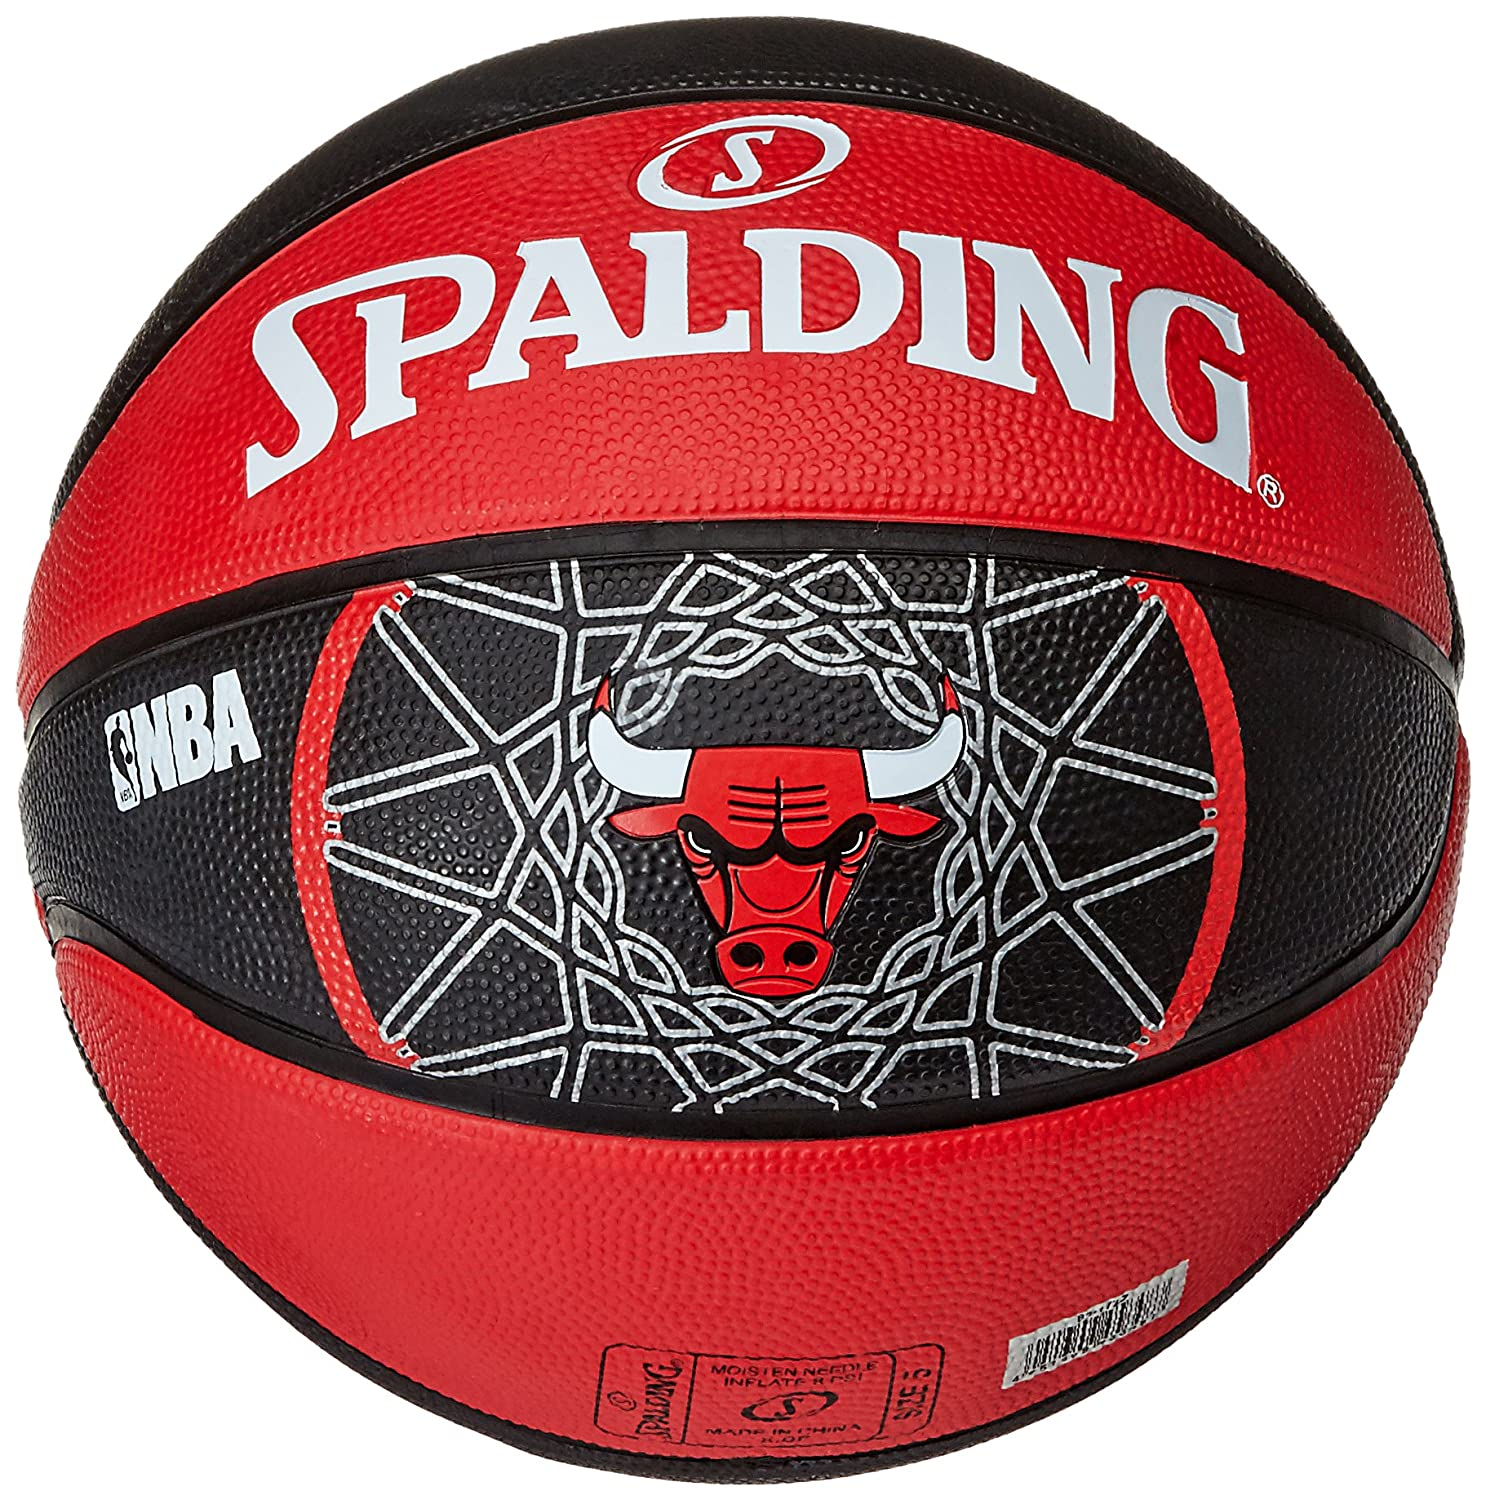 Spalding 3001587011315, Baloncesto, Multicolor, 5: Amazon.es ...